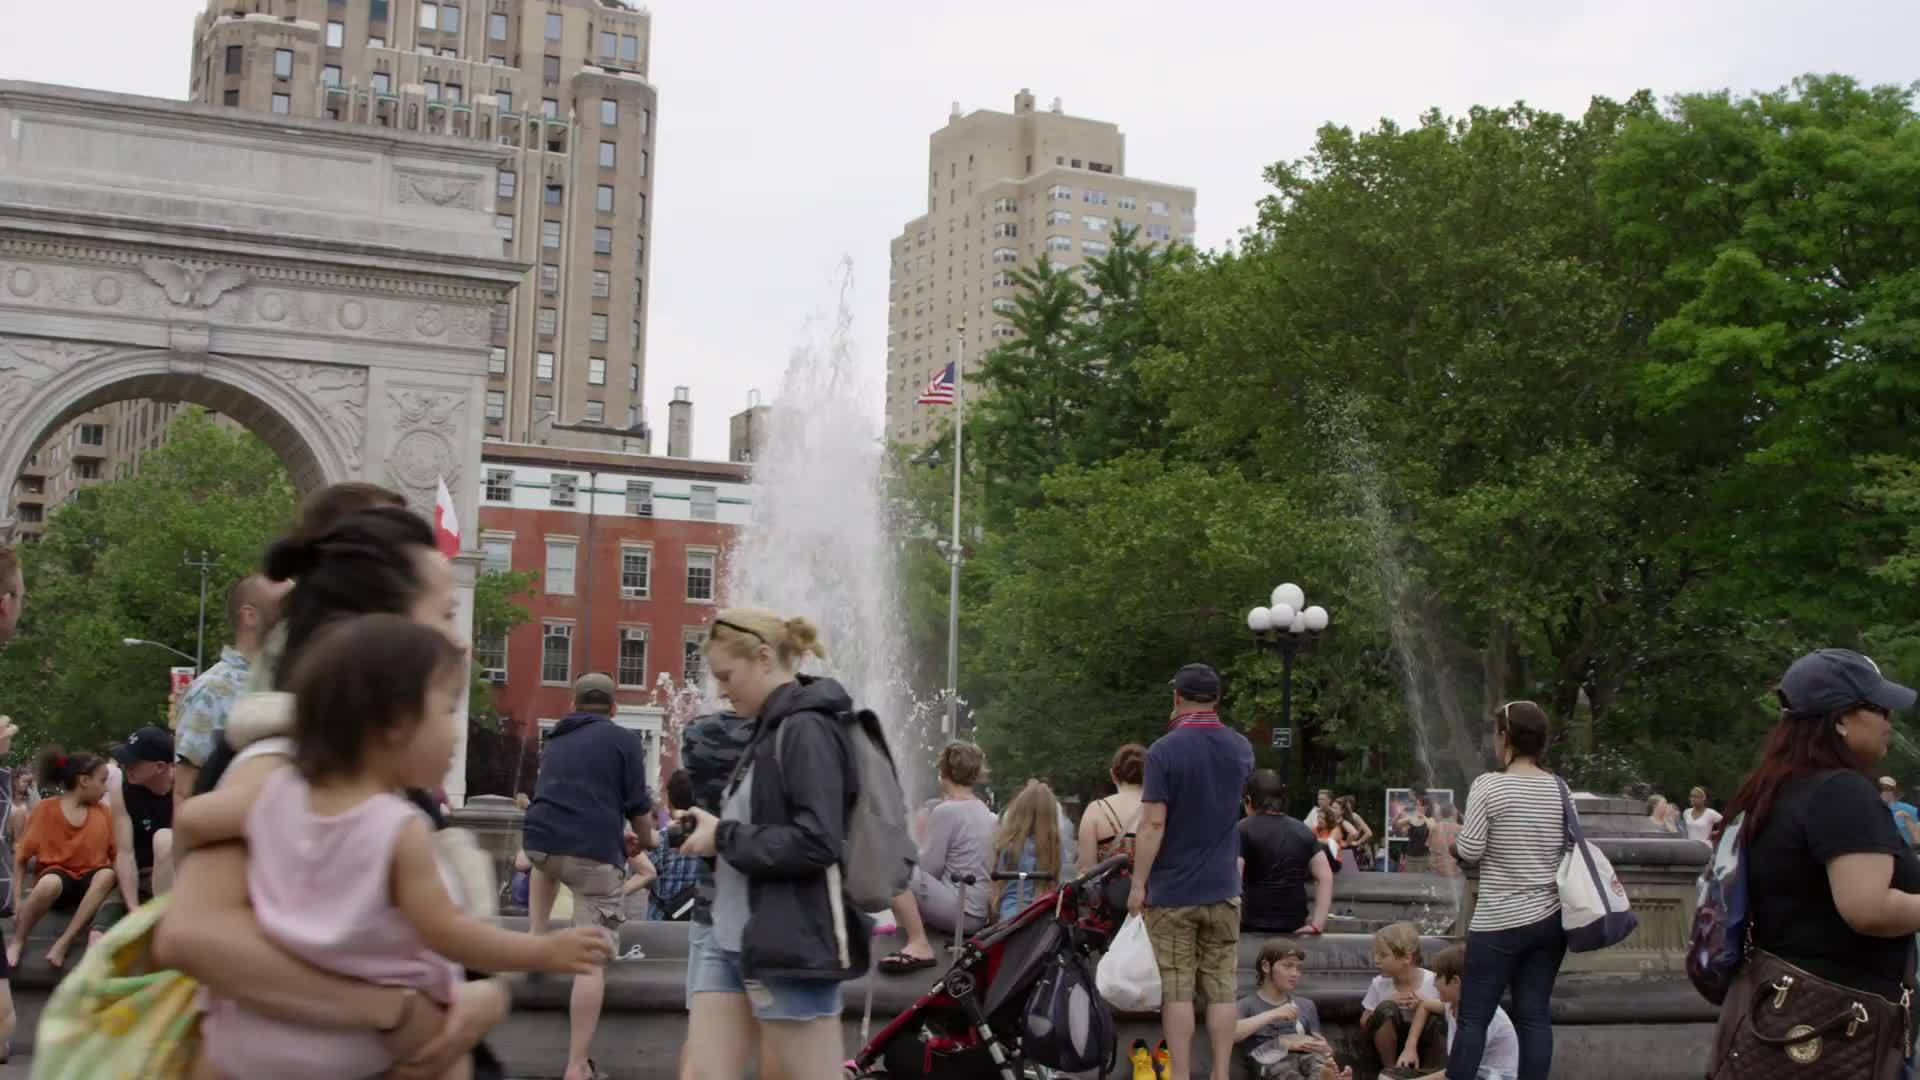 people walking in Washington Square Park by Tisch Fountain in summer in slow motion - famous landmark arch